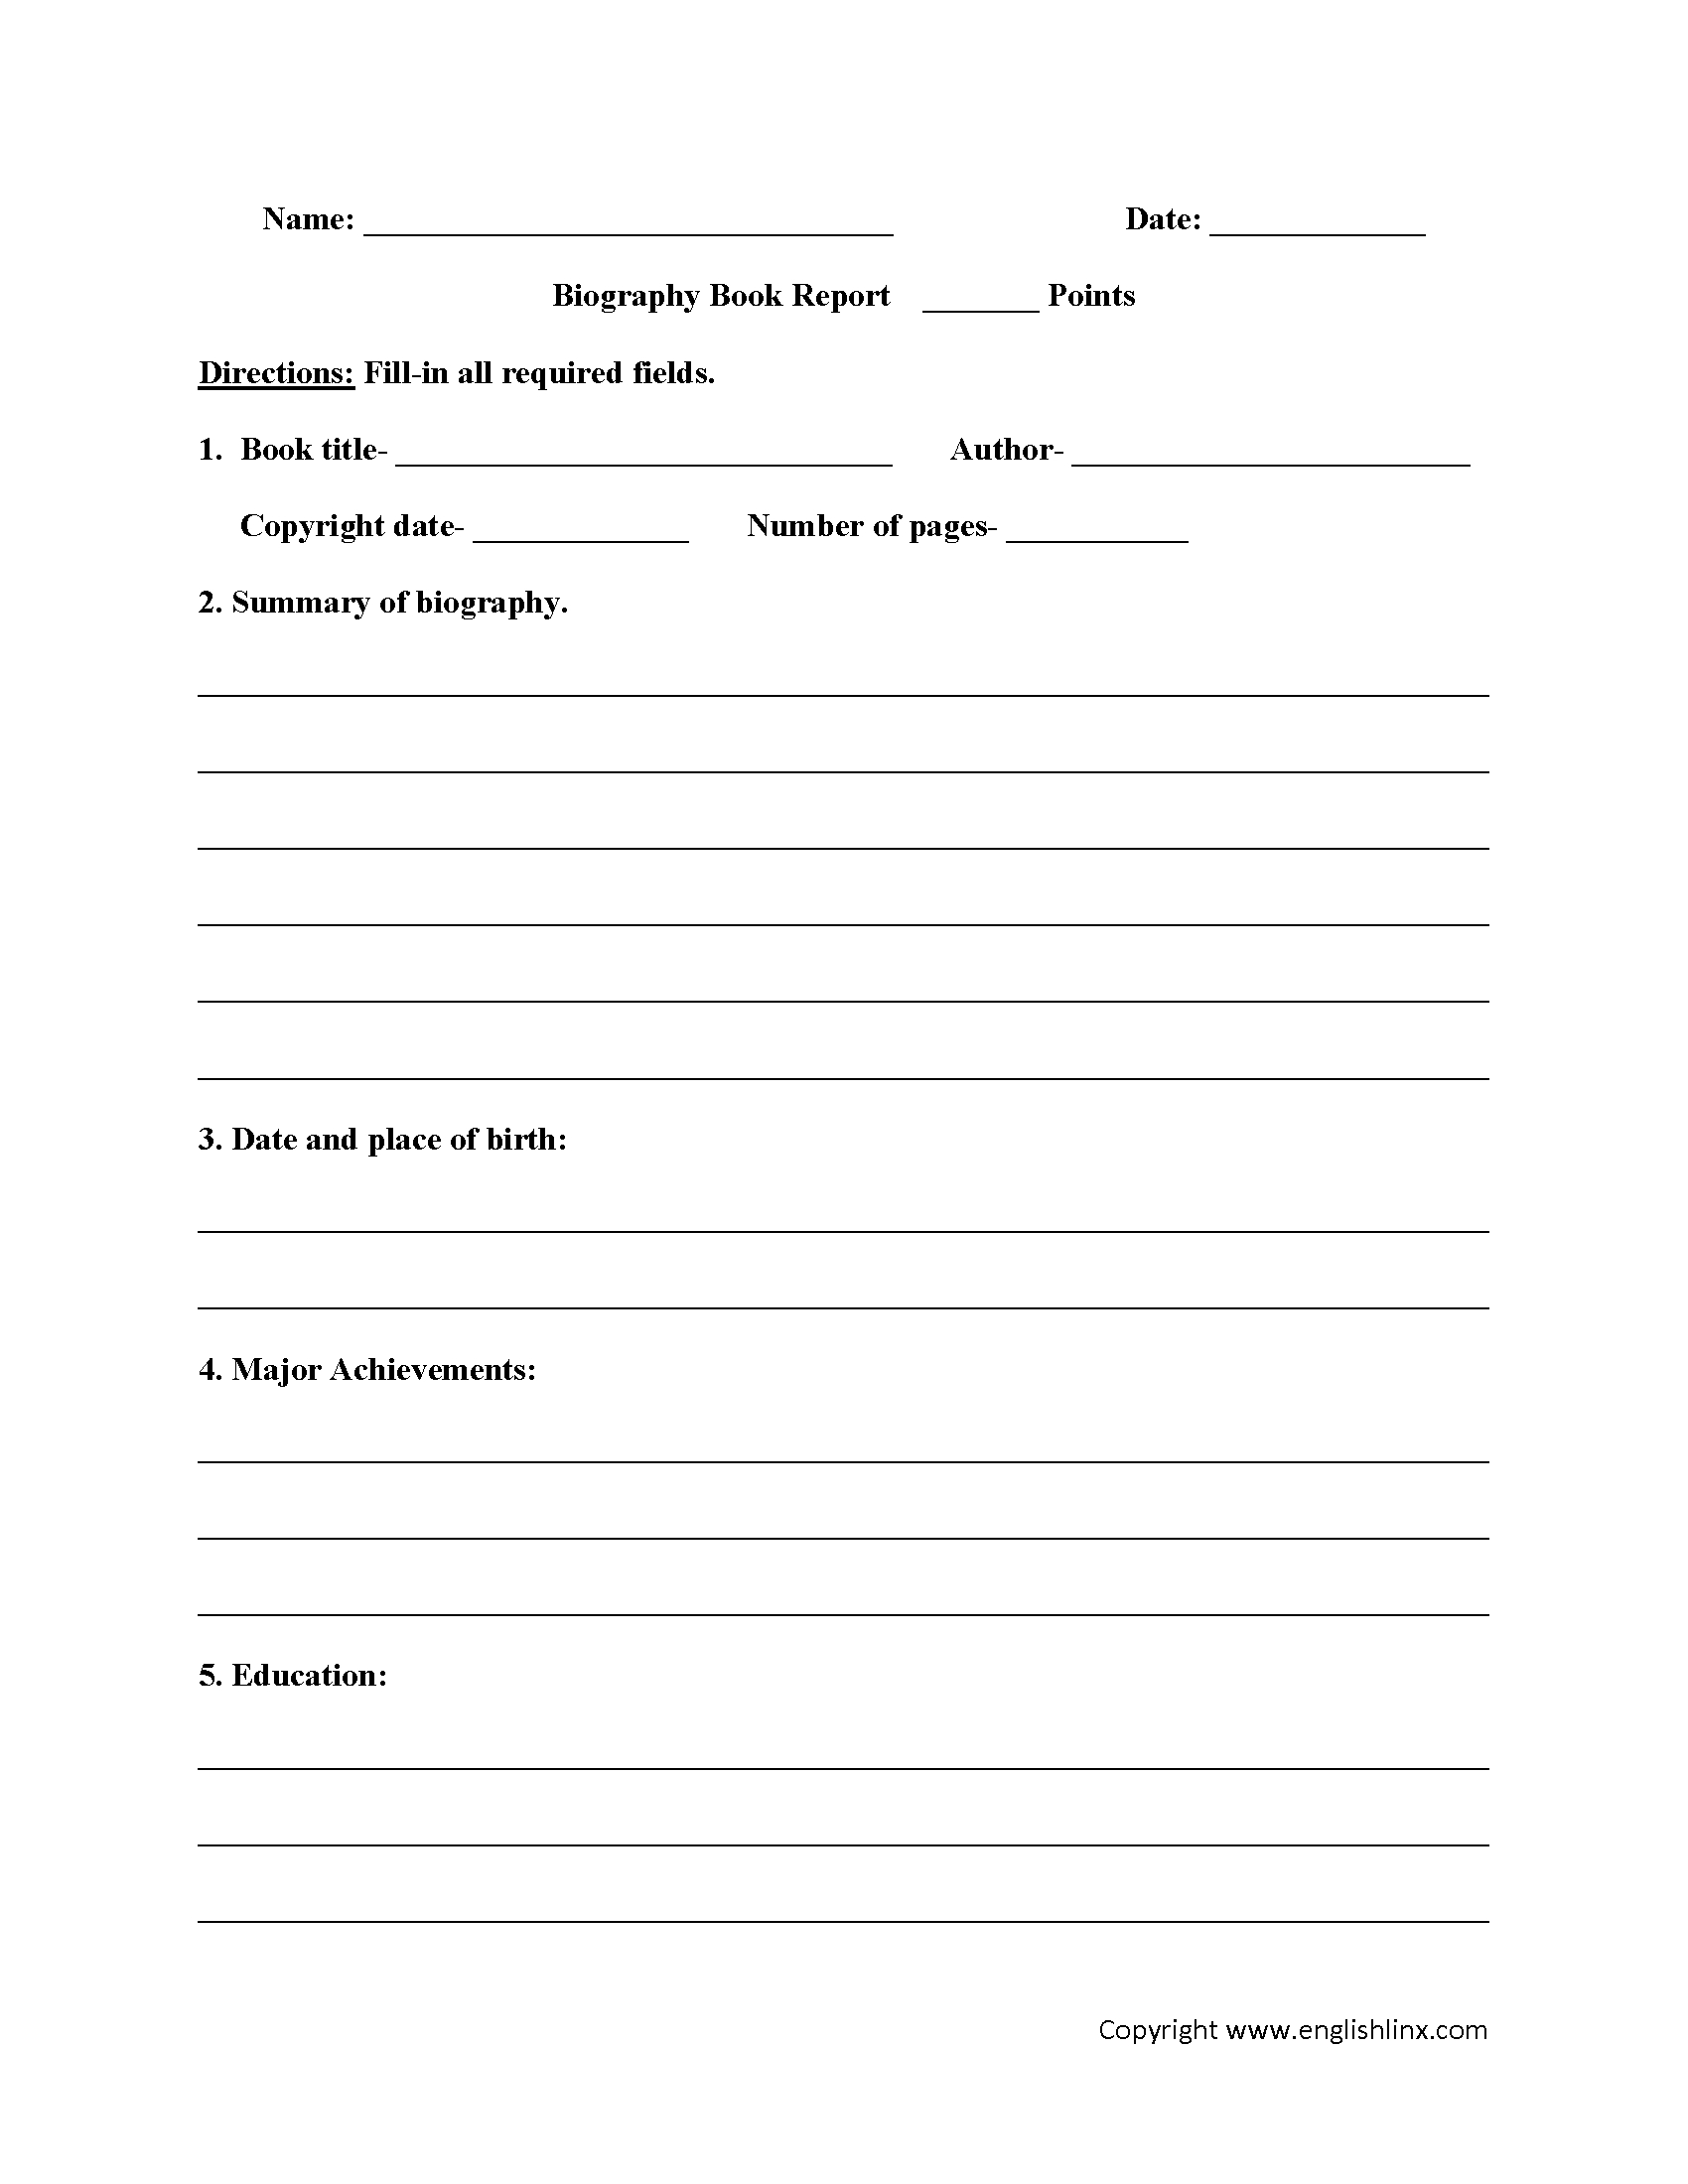 Englishlinx | Book Report Worksheets - Free Printable Book Report Forms For Elementary Students